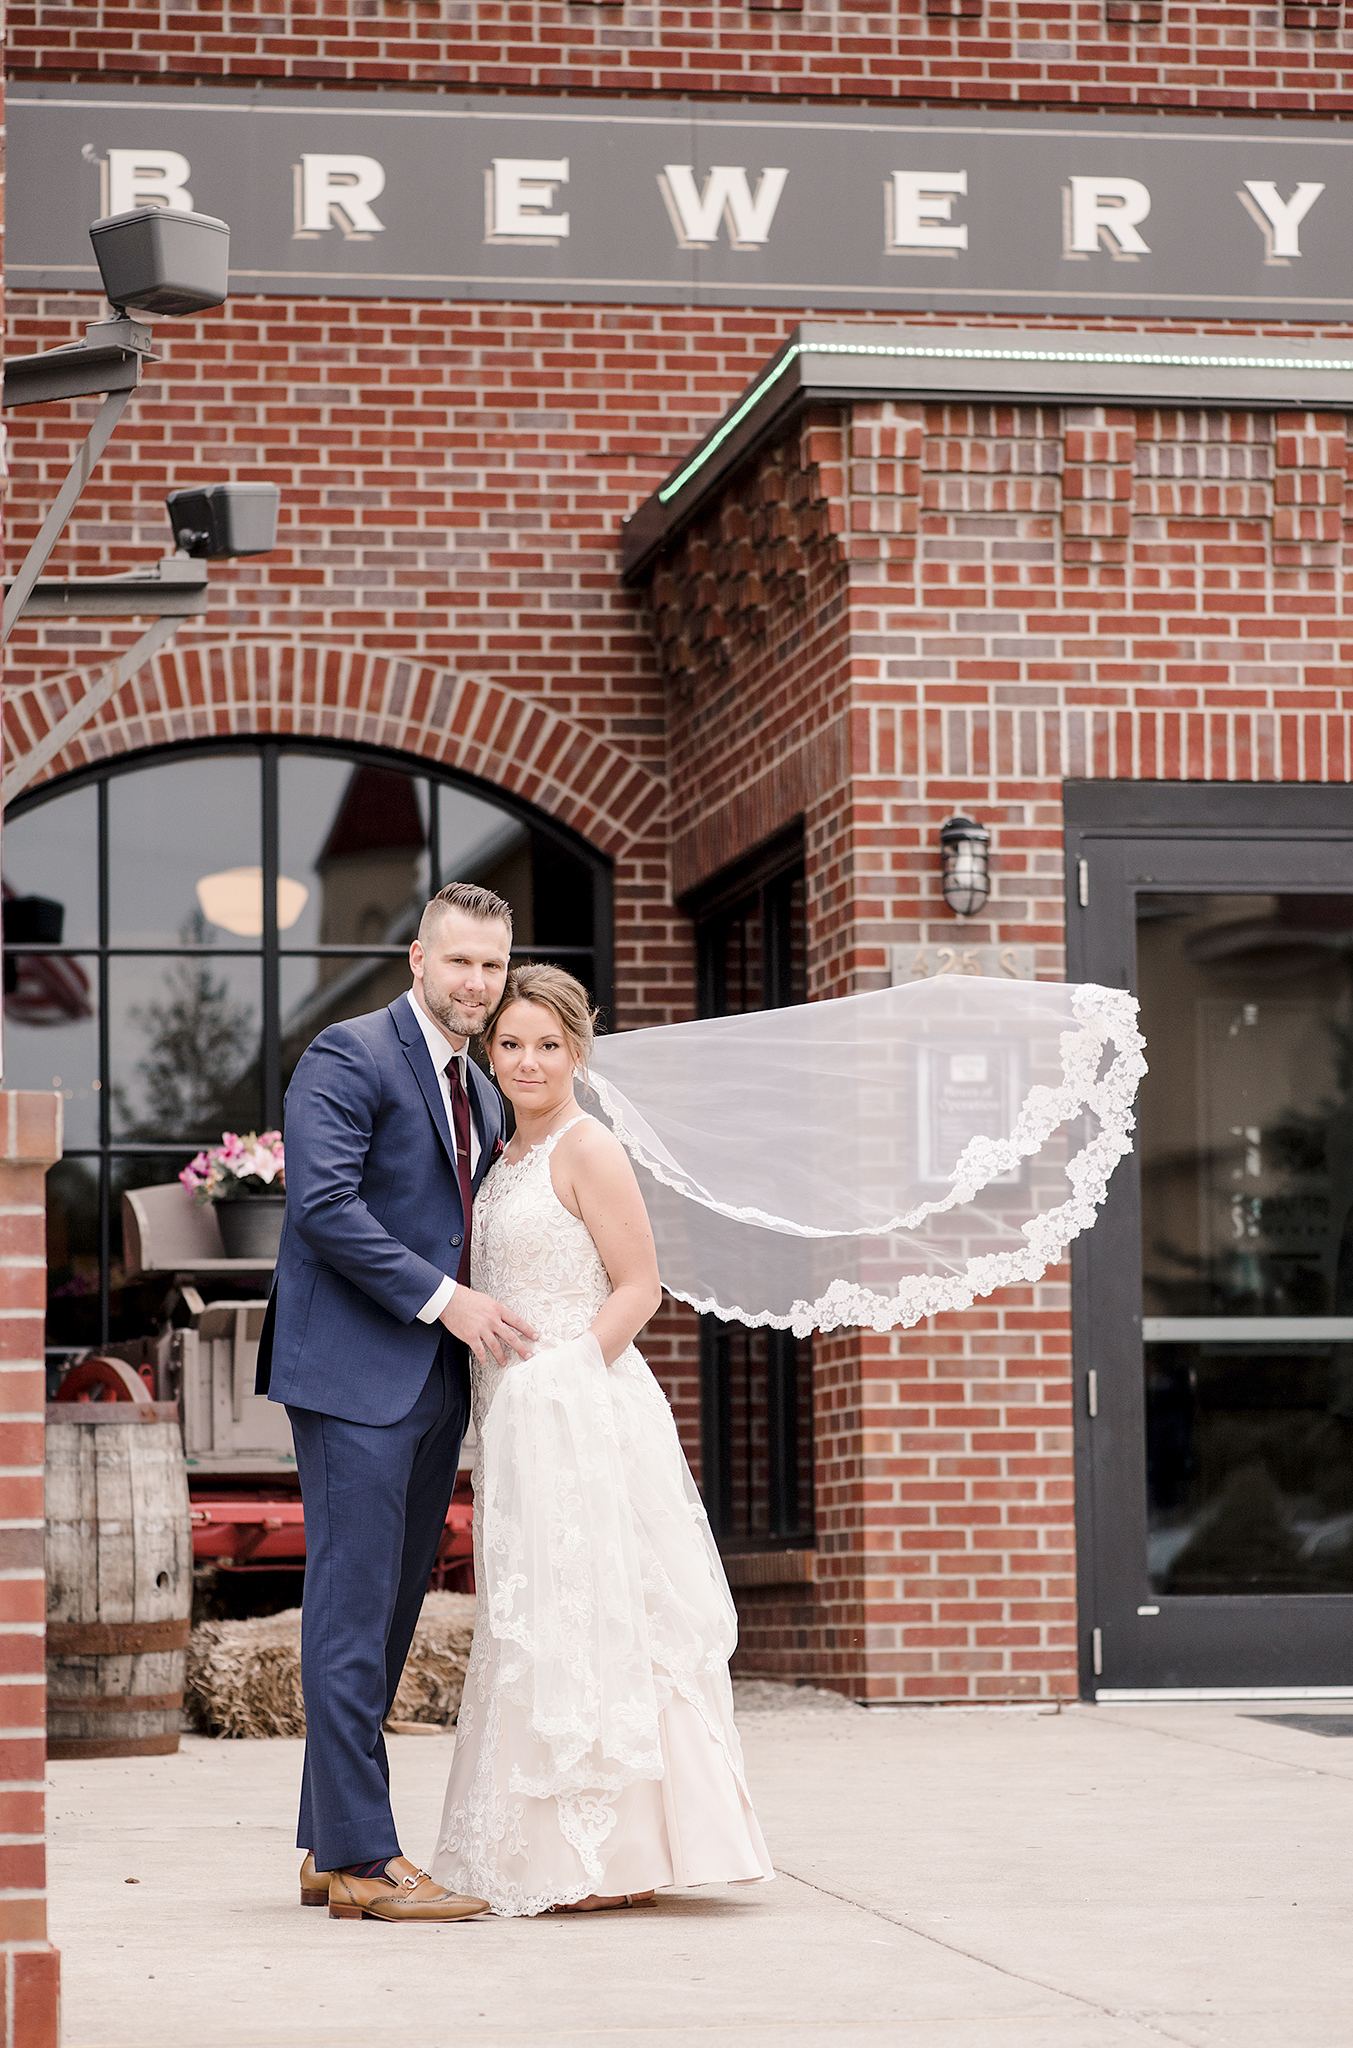 LINDSAY-ADKINS-PHOTOGRAPHY-MICHIGAN-WEDDING-PHOTOGRAPHER-FRANKENMUTH-BREWERY-WEDDING-MICHIGAN-BLOG-29